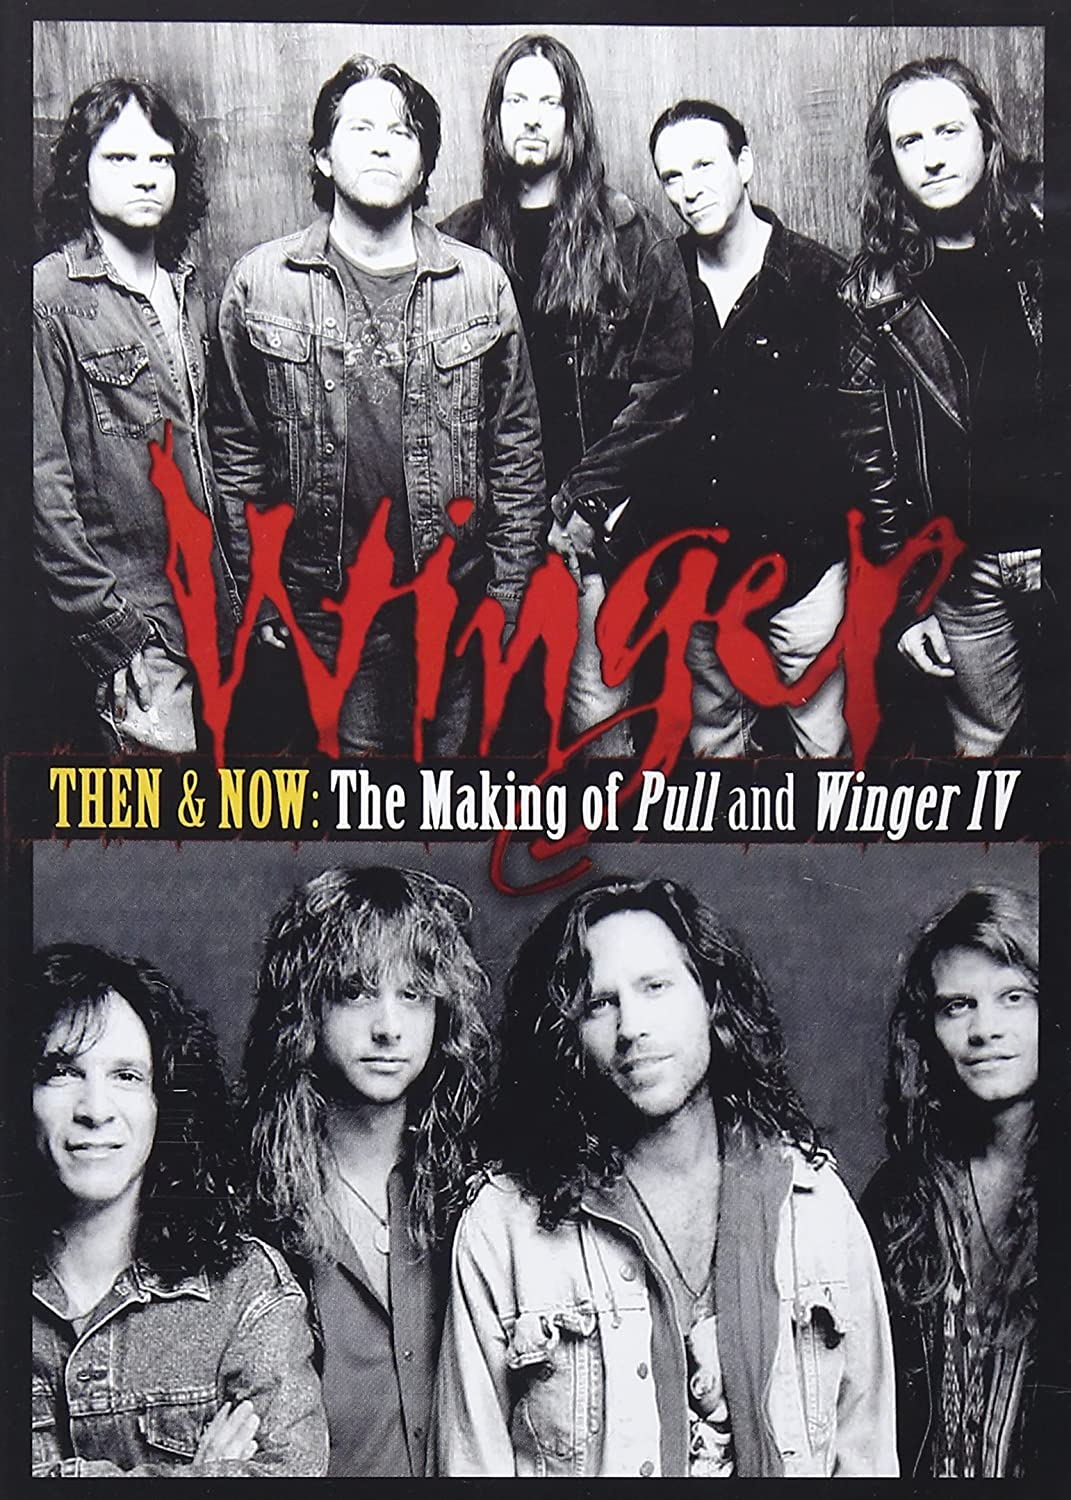 Then & Now: Making of Pull & Winger IV [DVD] [Import] B001TIQULK